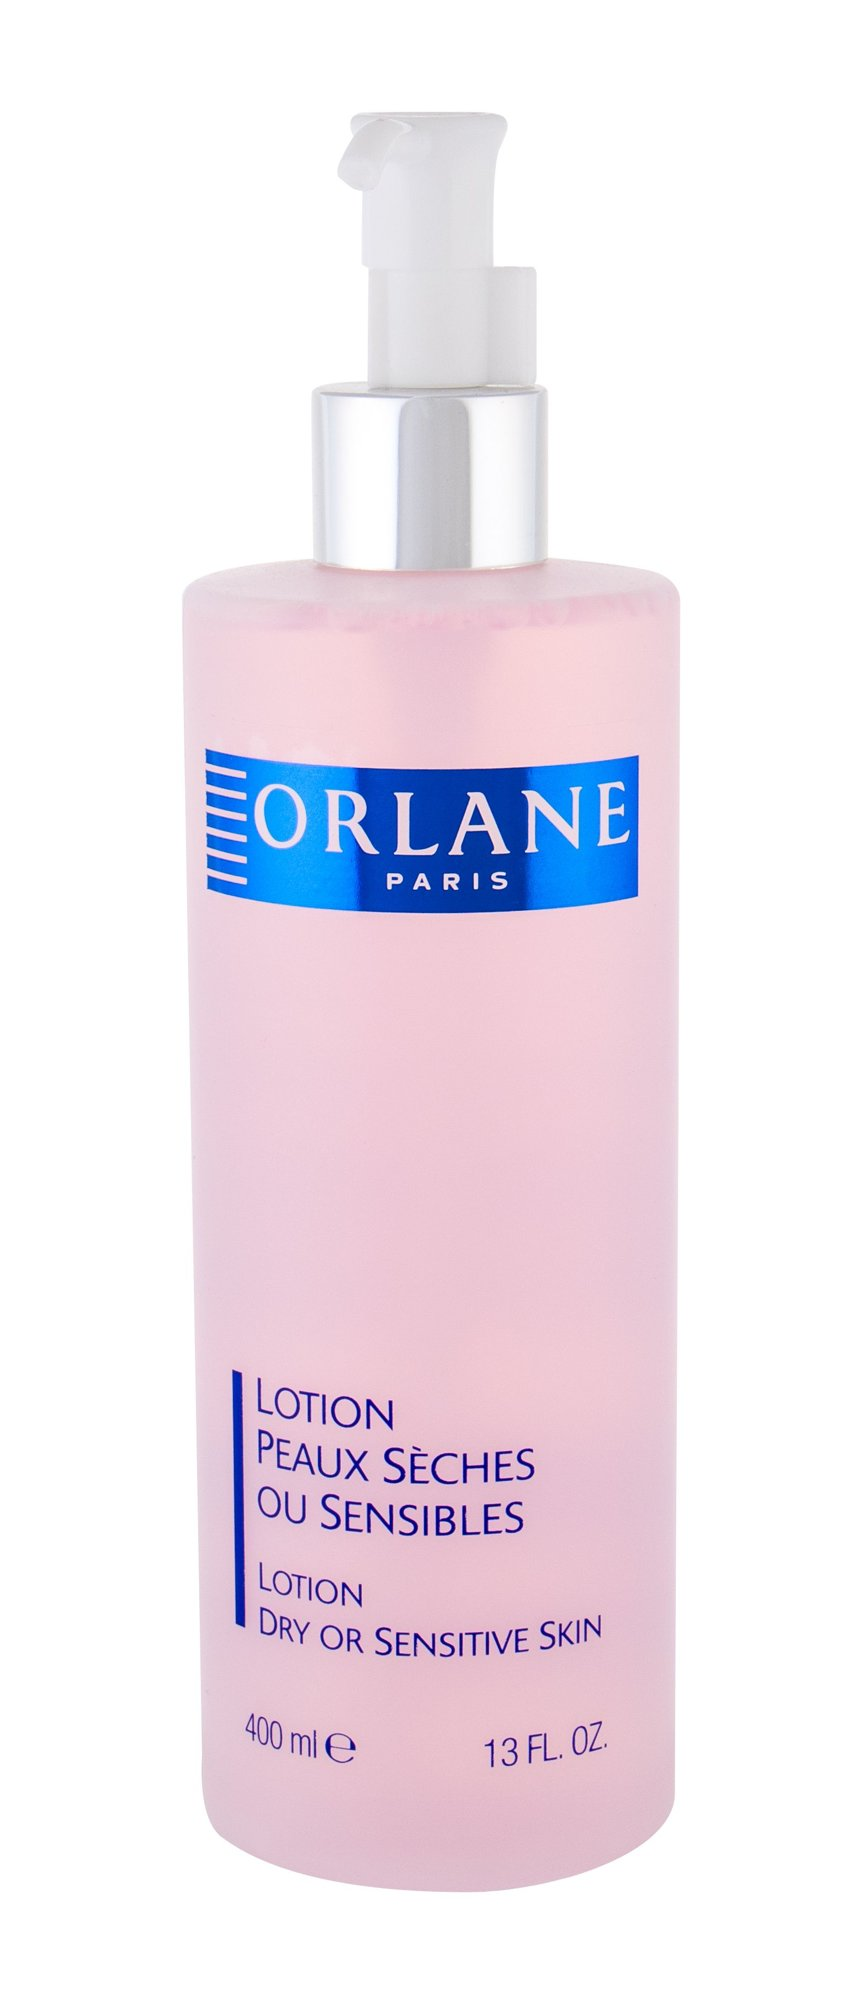 Orlane Cleansing Facial Lotion and Spray 400ml